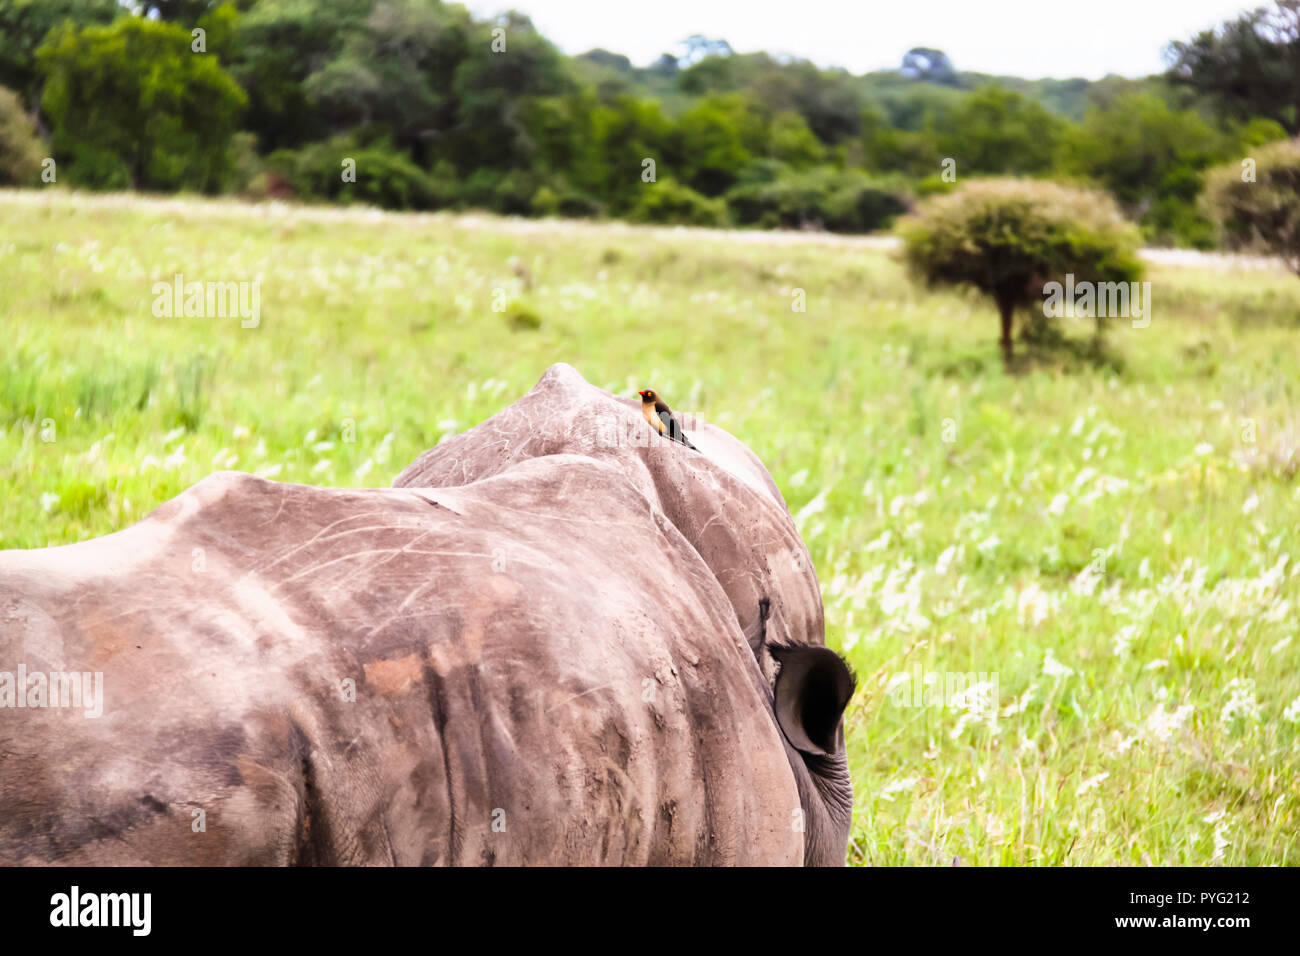 Southern white rhinoceros with Oxpecker perching on its back - Stock Image